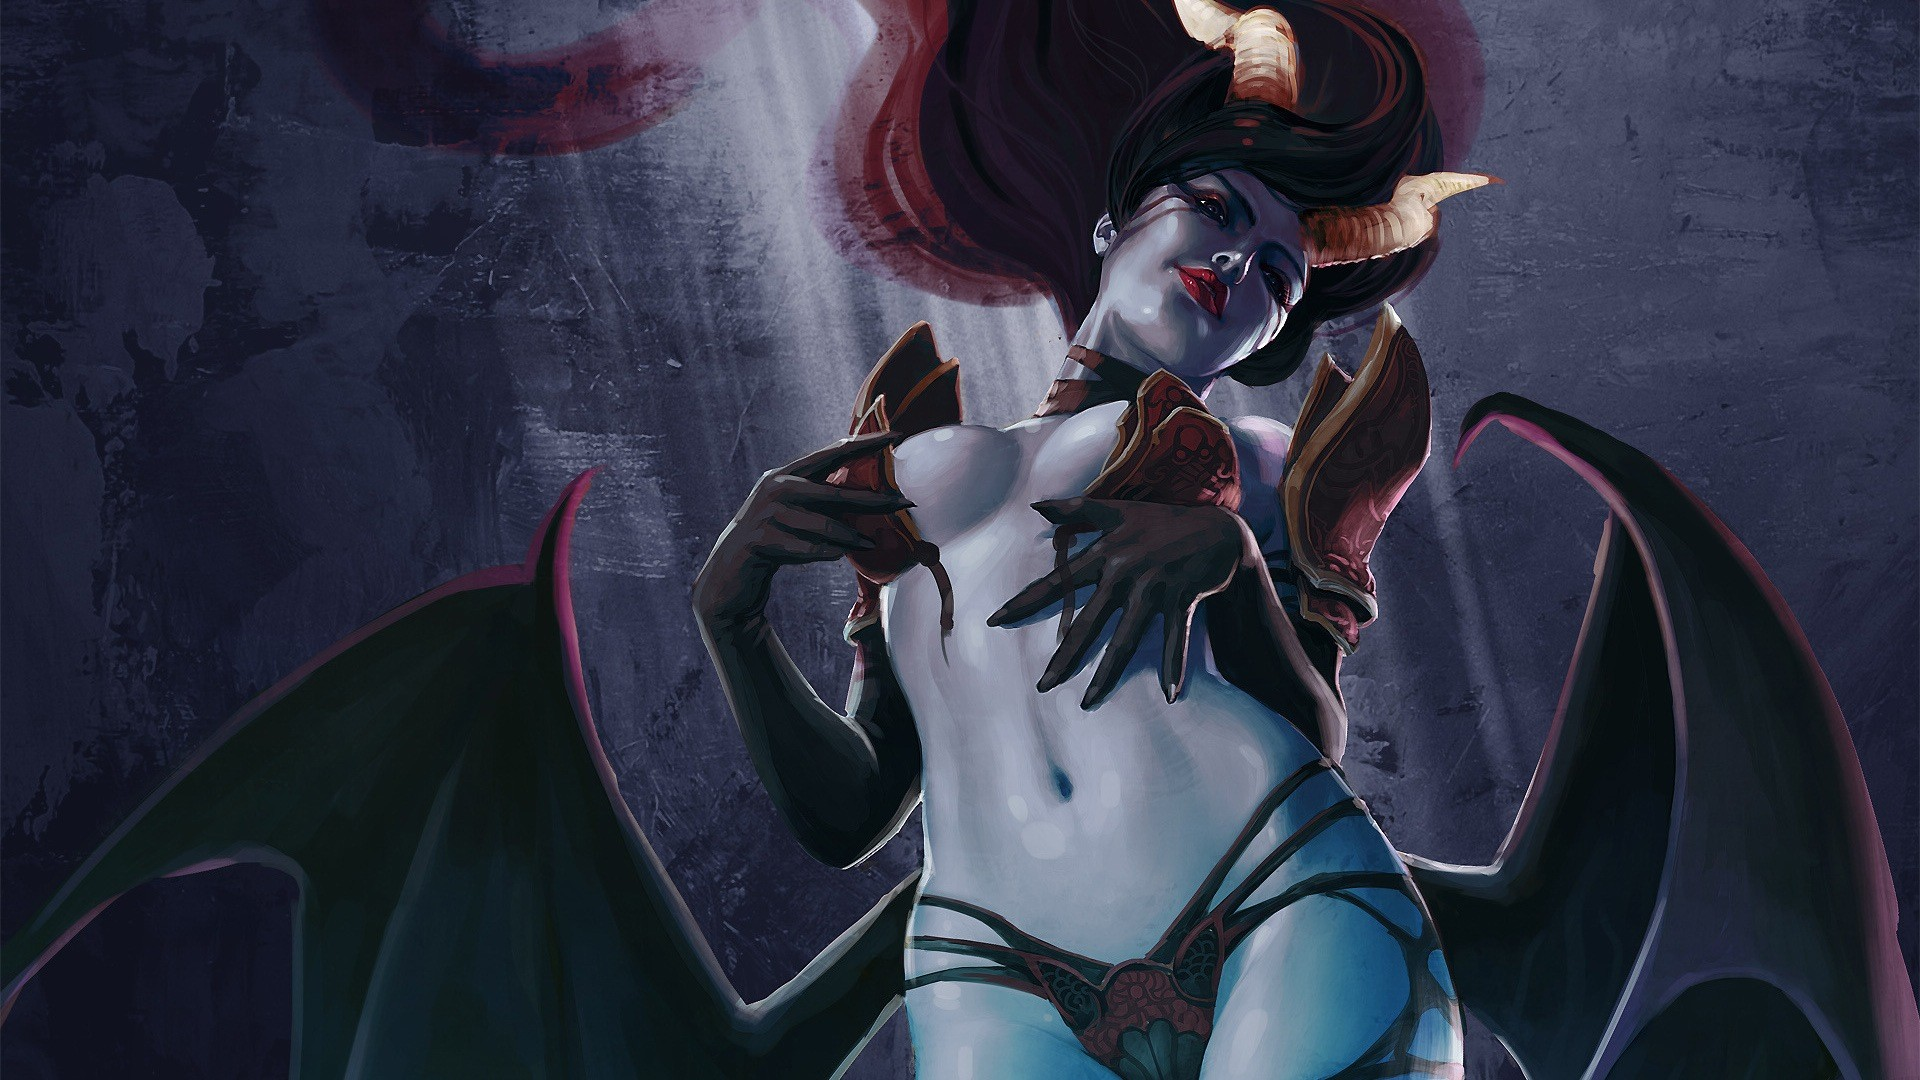 1920x1080 DOTA 2 HD game wallpapers #7 - .